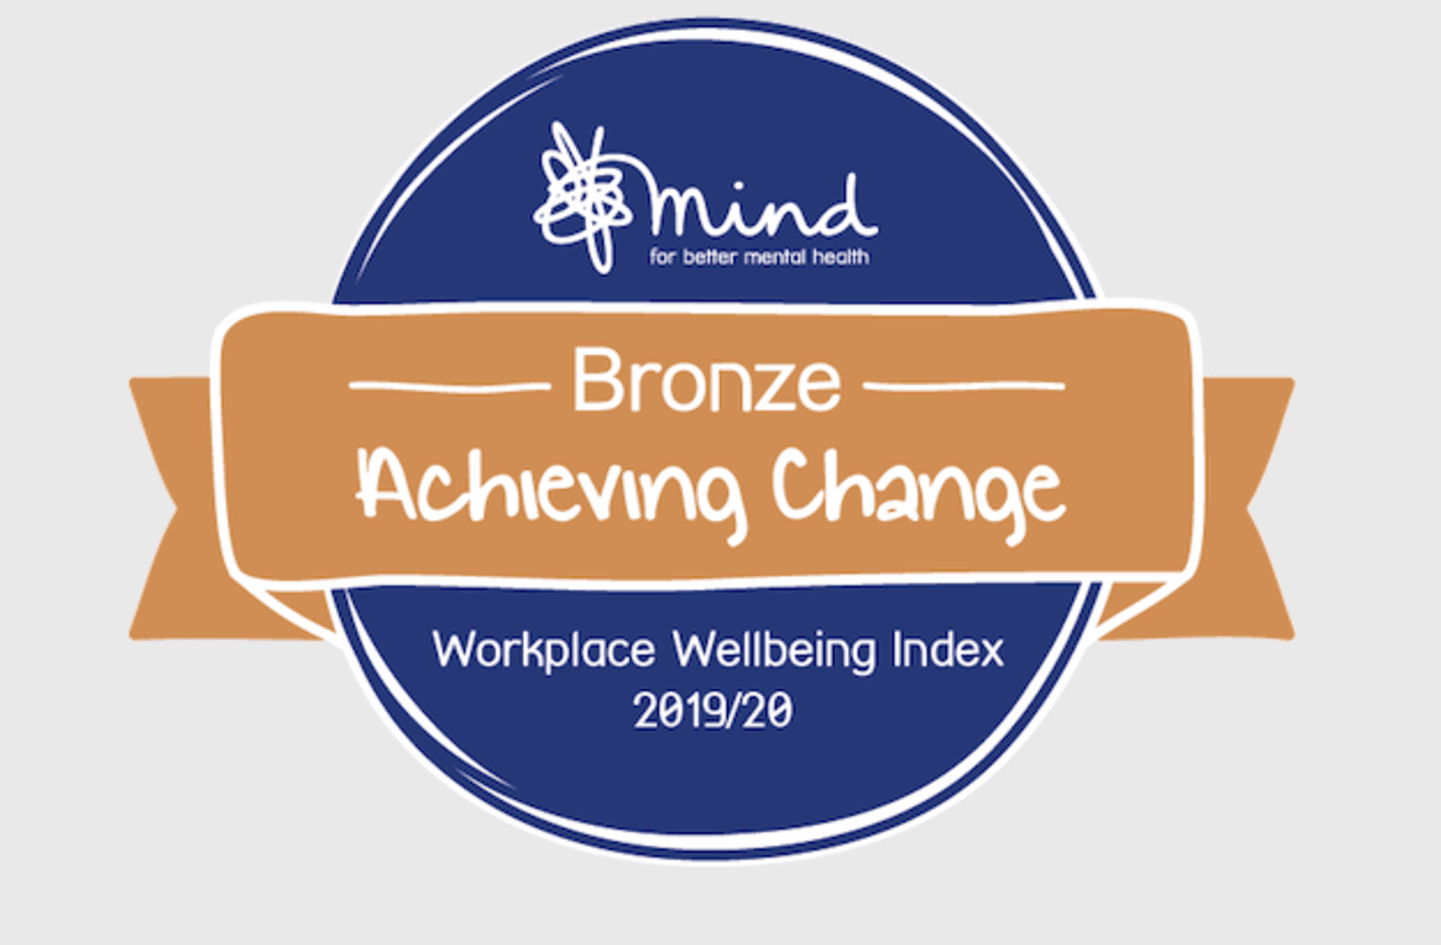 mind's Bronze badge